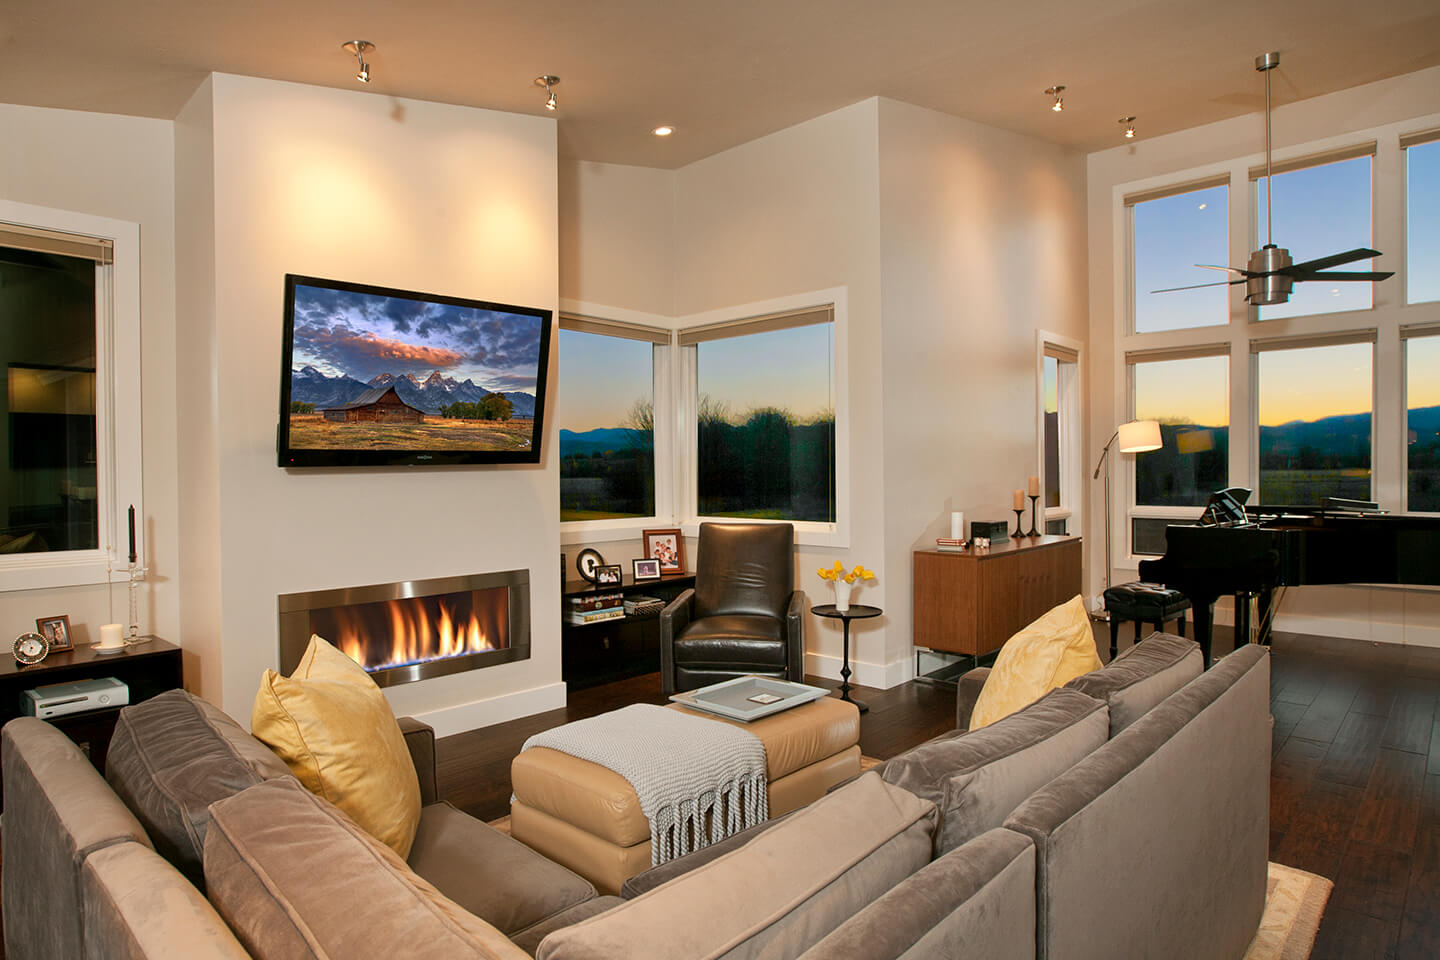 Living room with views towards the moutain range